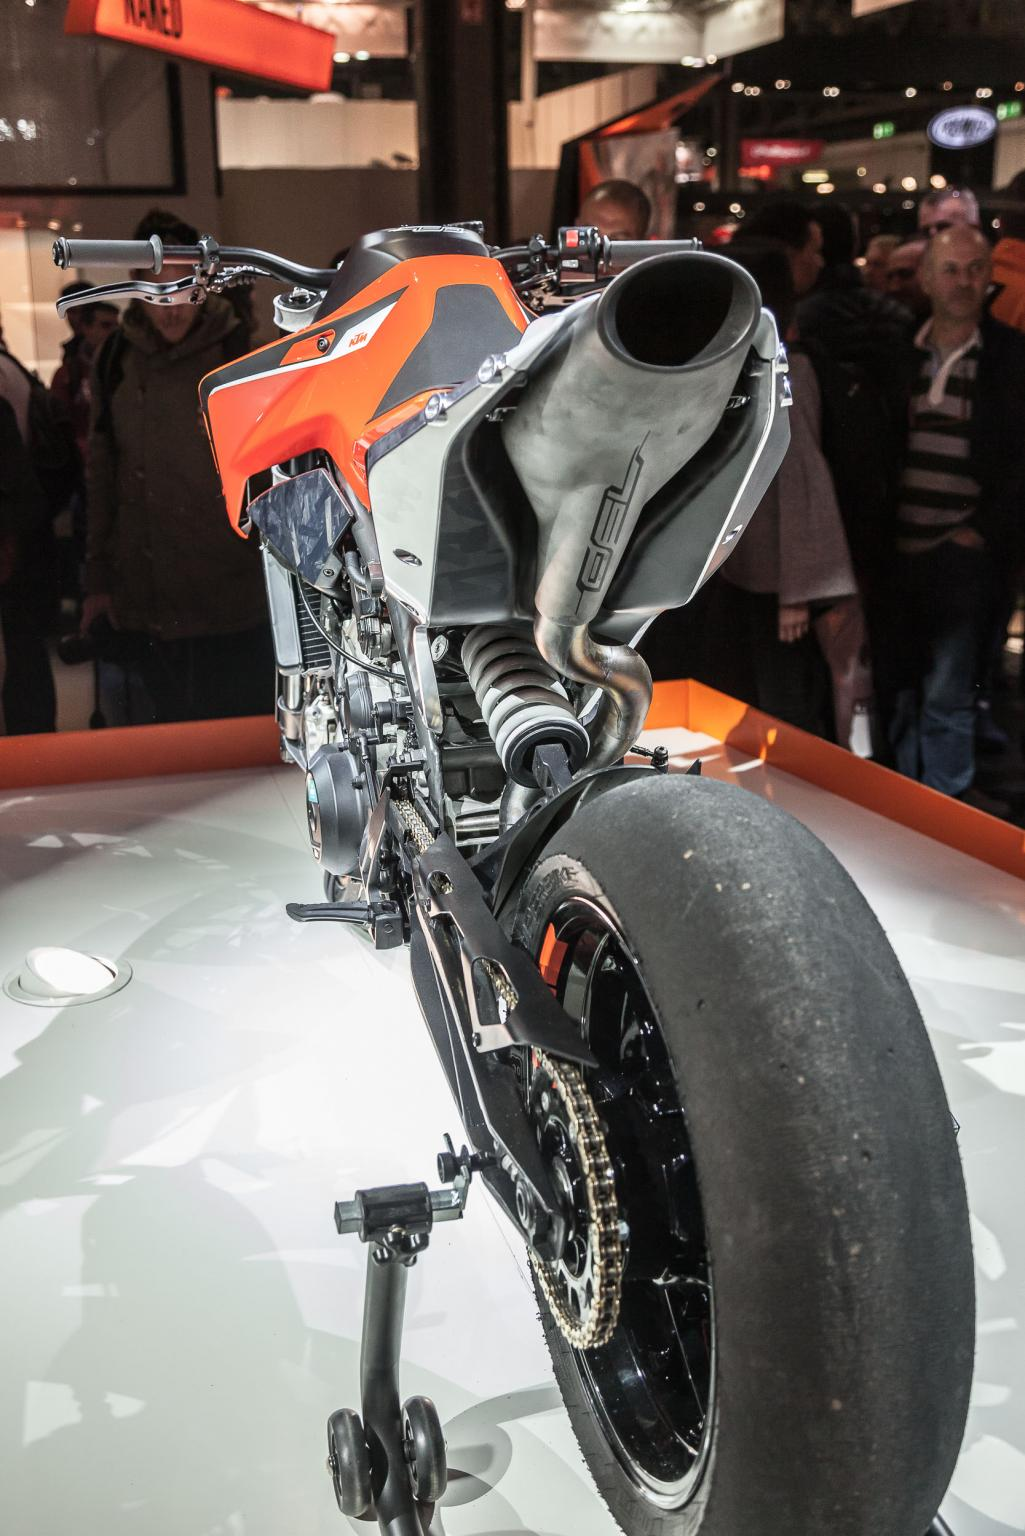 ktm 790 duke prototype motorrad fotos motorrad bilder. Black Bedroom Furniture Sets. Home Design Ideas